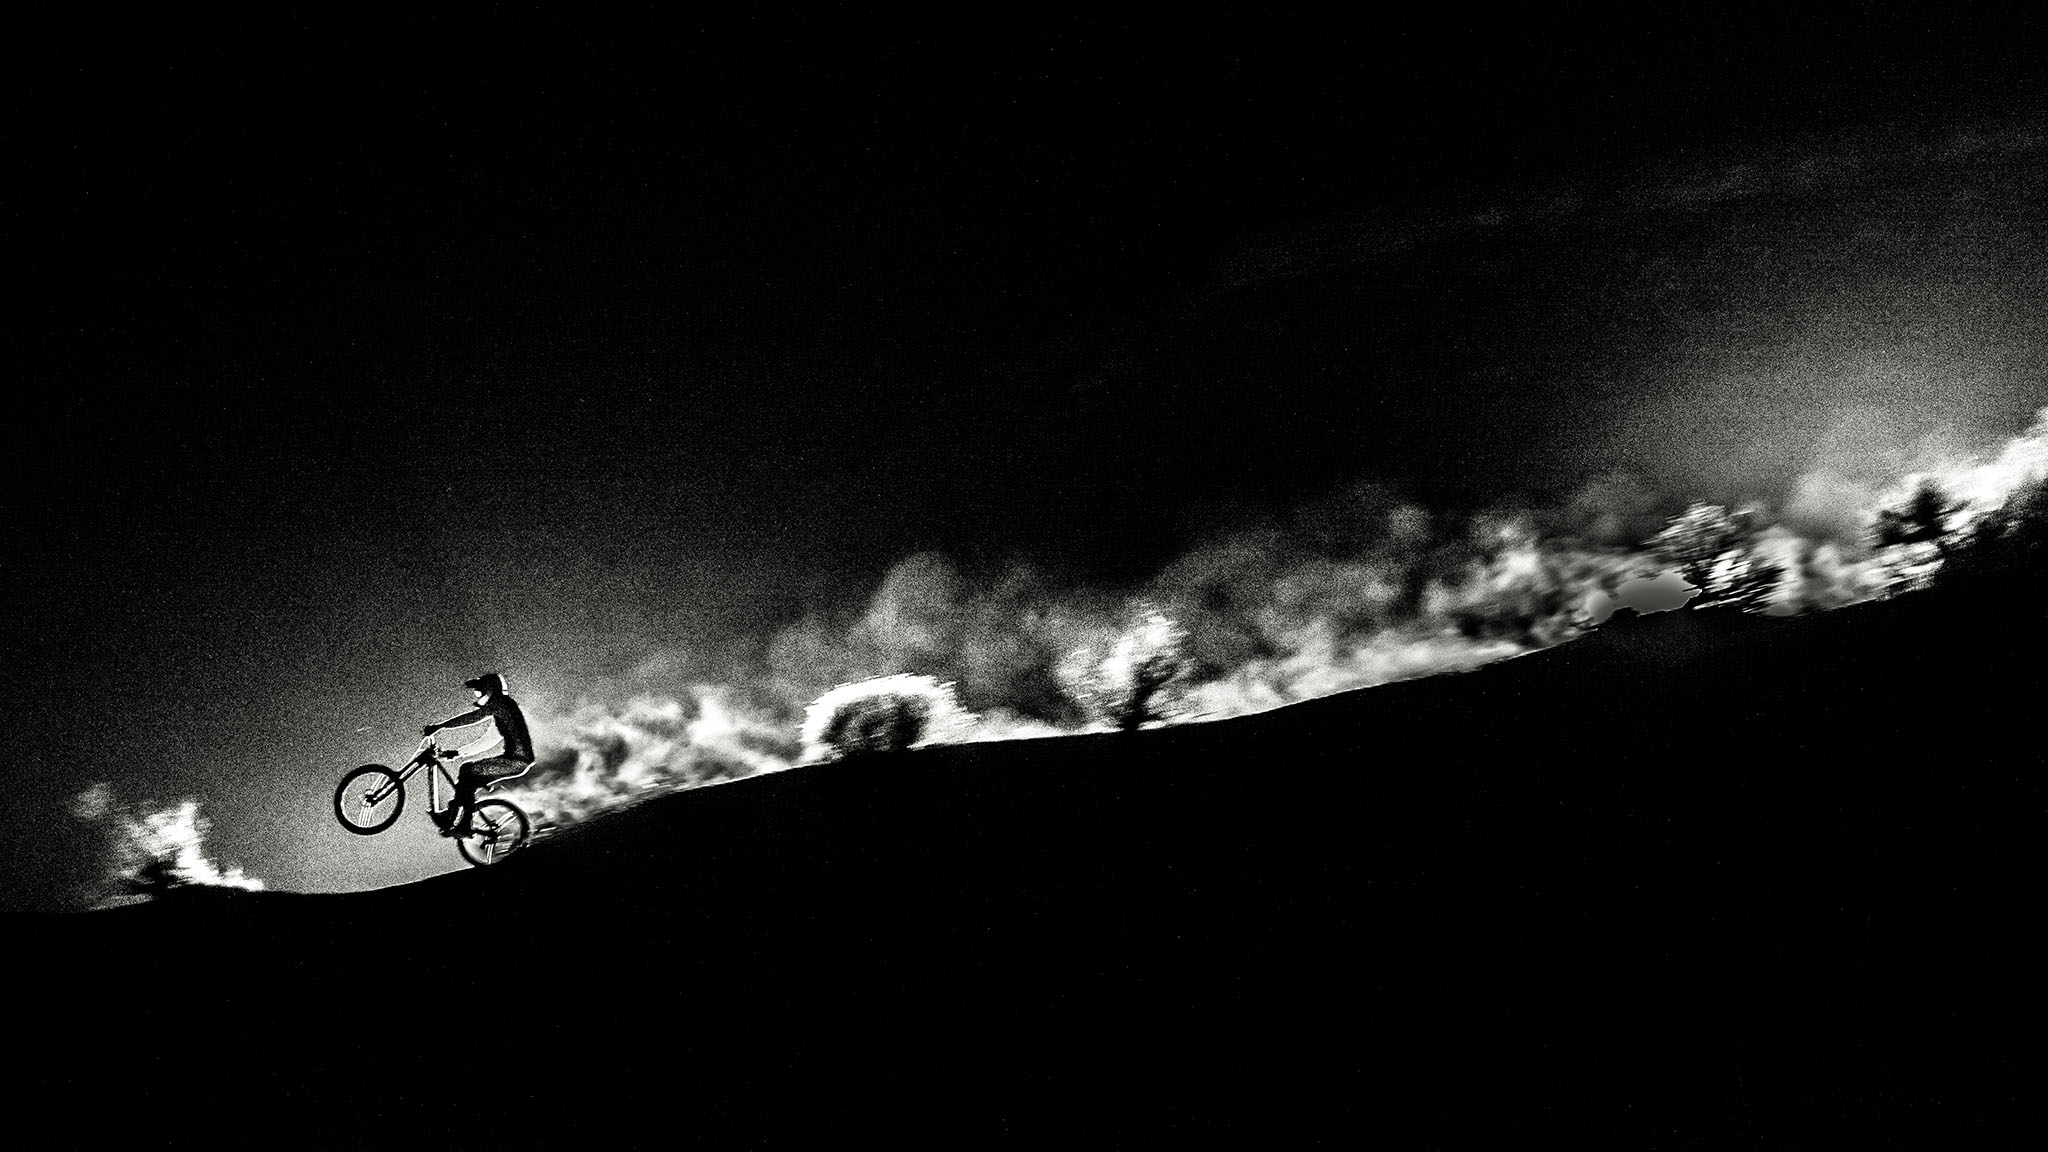 brandon semenuk virgin utah best black and white photography brandon semenuk virgin utah best black and white photography in action sports x games